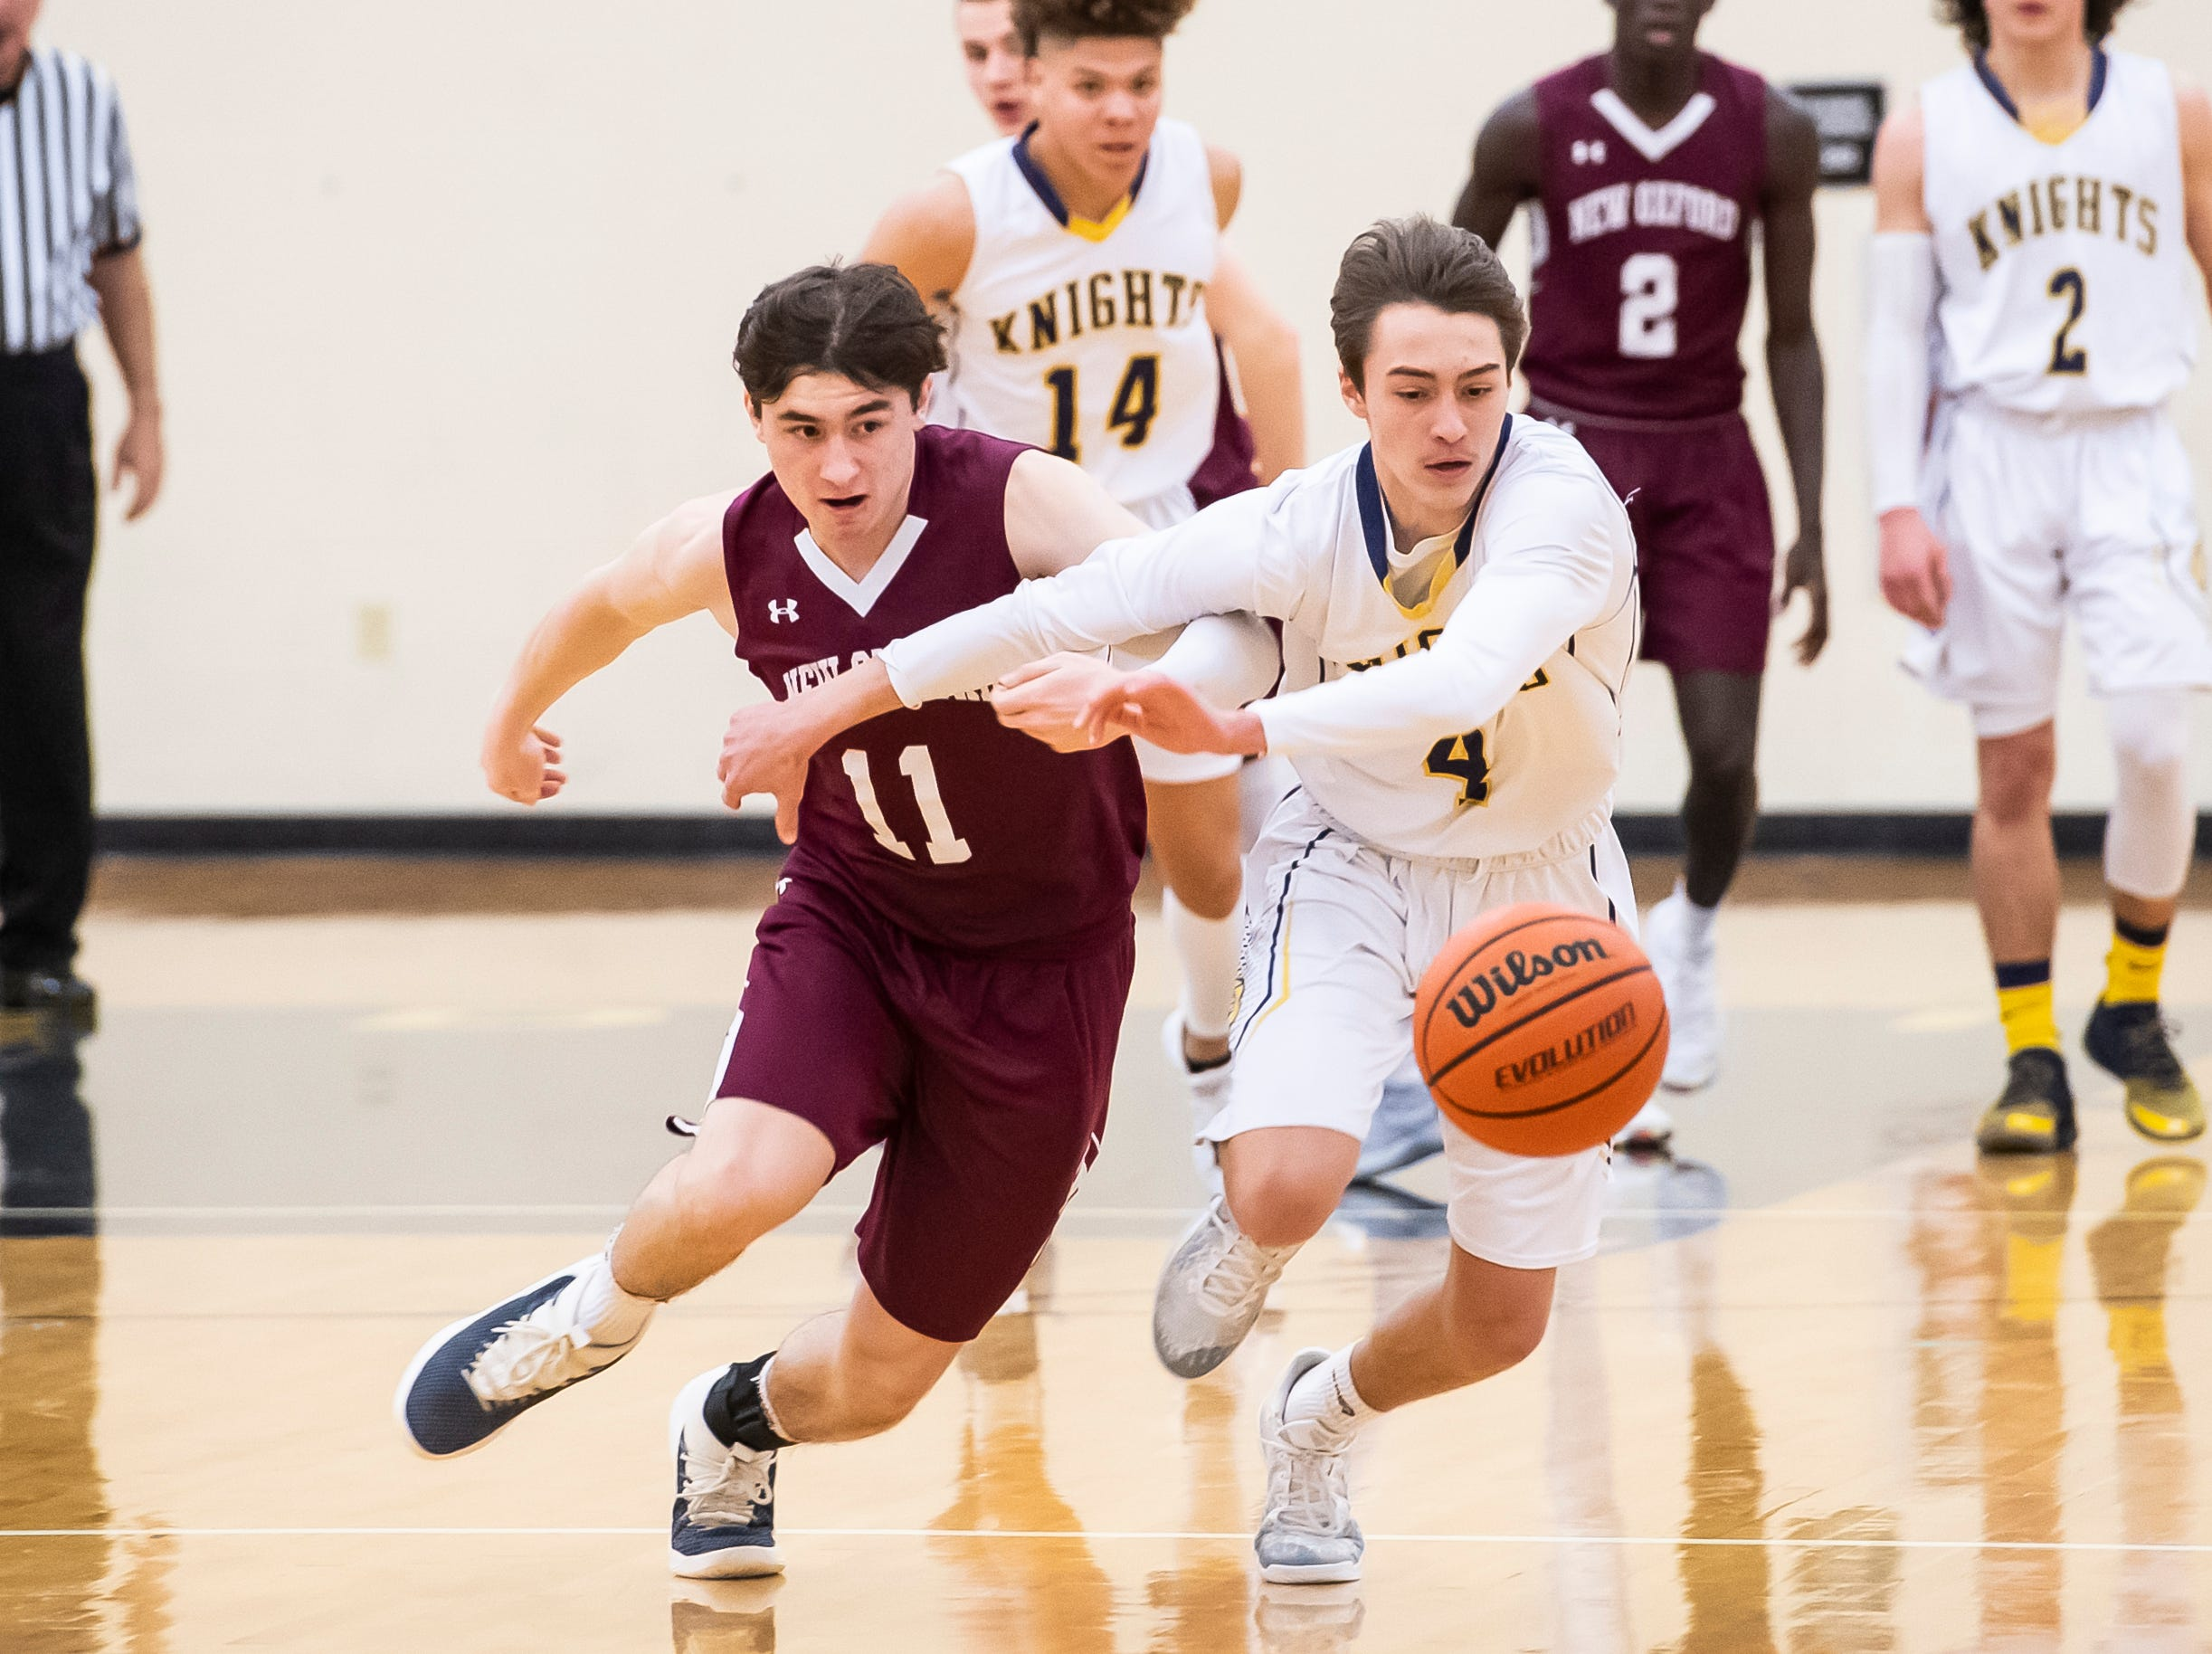 """Eastern York's Trevor Seitz (4) and New Oxford's Noah Strausbaugh chase after a loose ball during play in a YAIAA quarterfinal game at Red Lion High School Saturday, February 9, 2019. """"I thought that (Strausbaugh) and Cameron (Krebs) collectively really tried to make Seitz really, really work and wear him down a little bit,"""" New Oxford head coach Sean Bair said."""